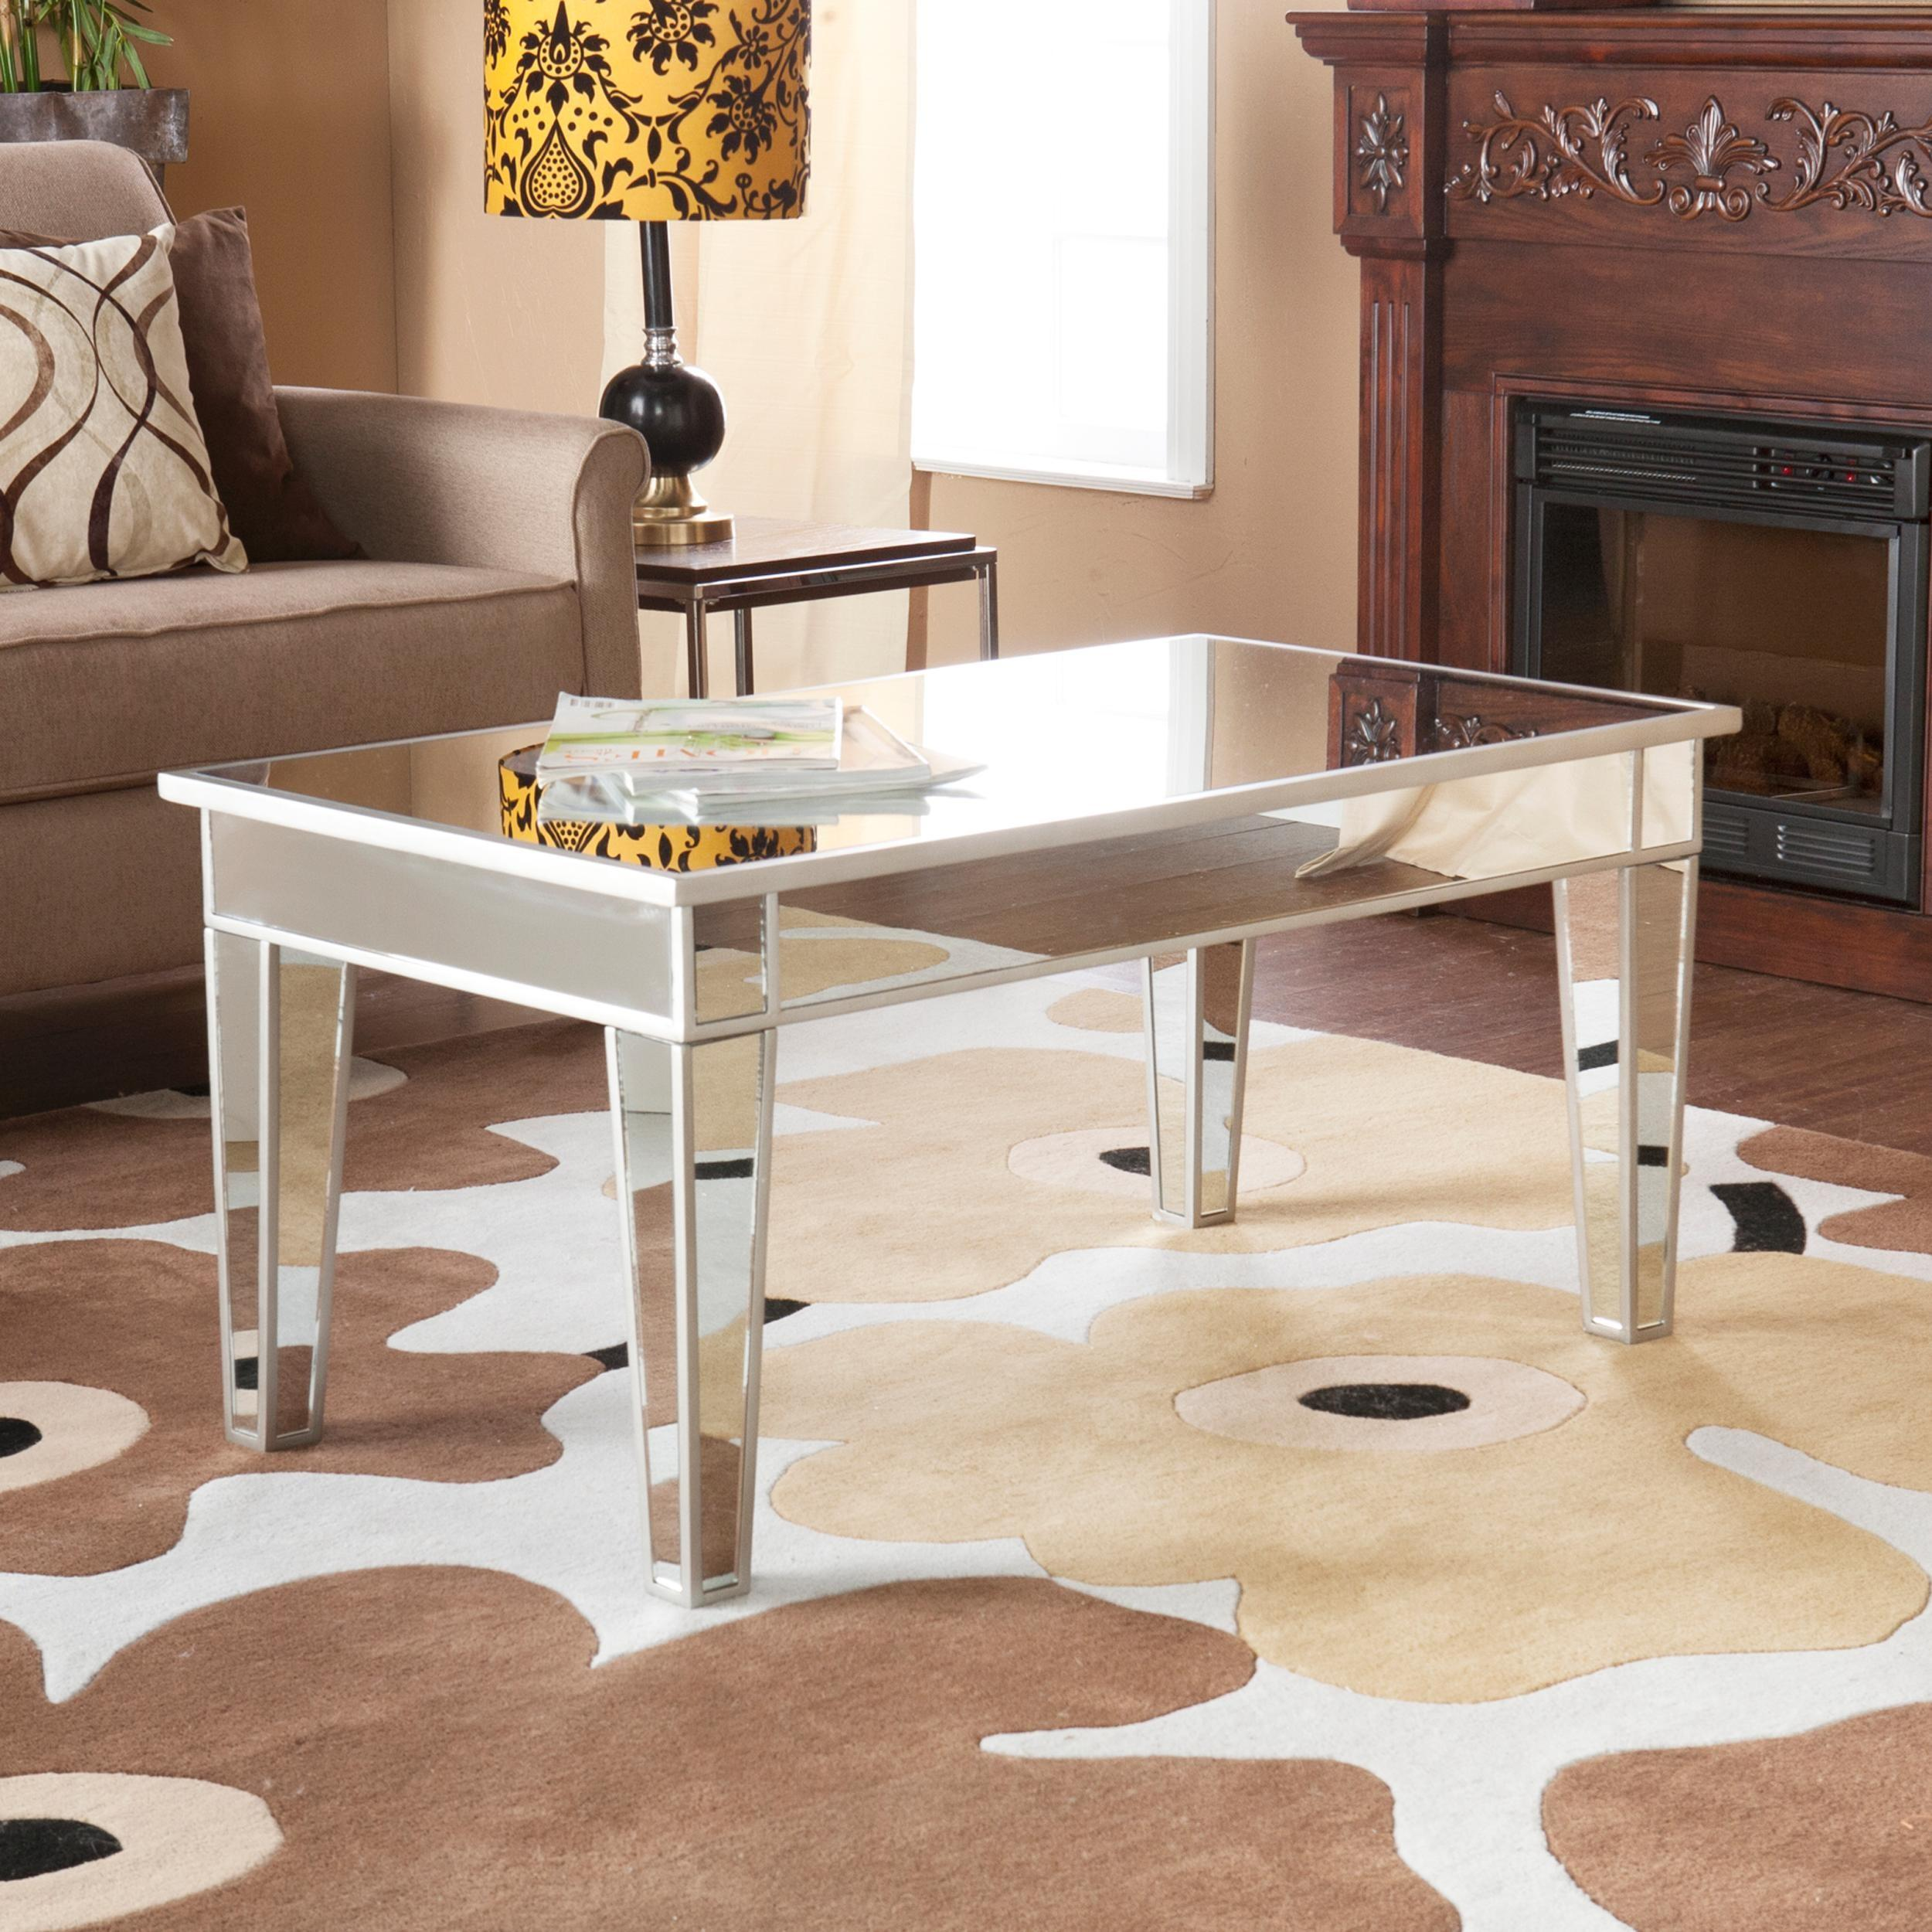 Amazing Mirrored Coffee Table Add Larger